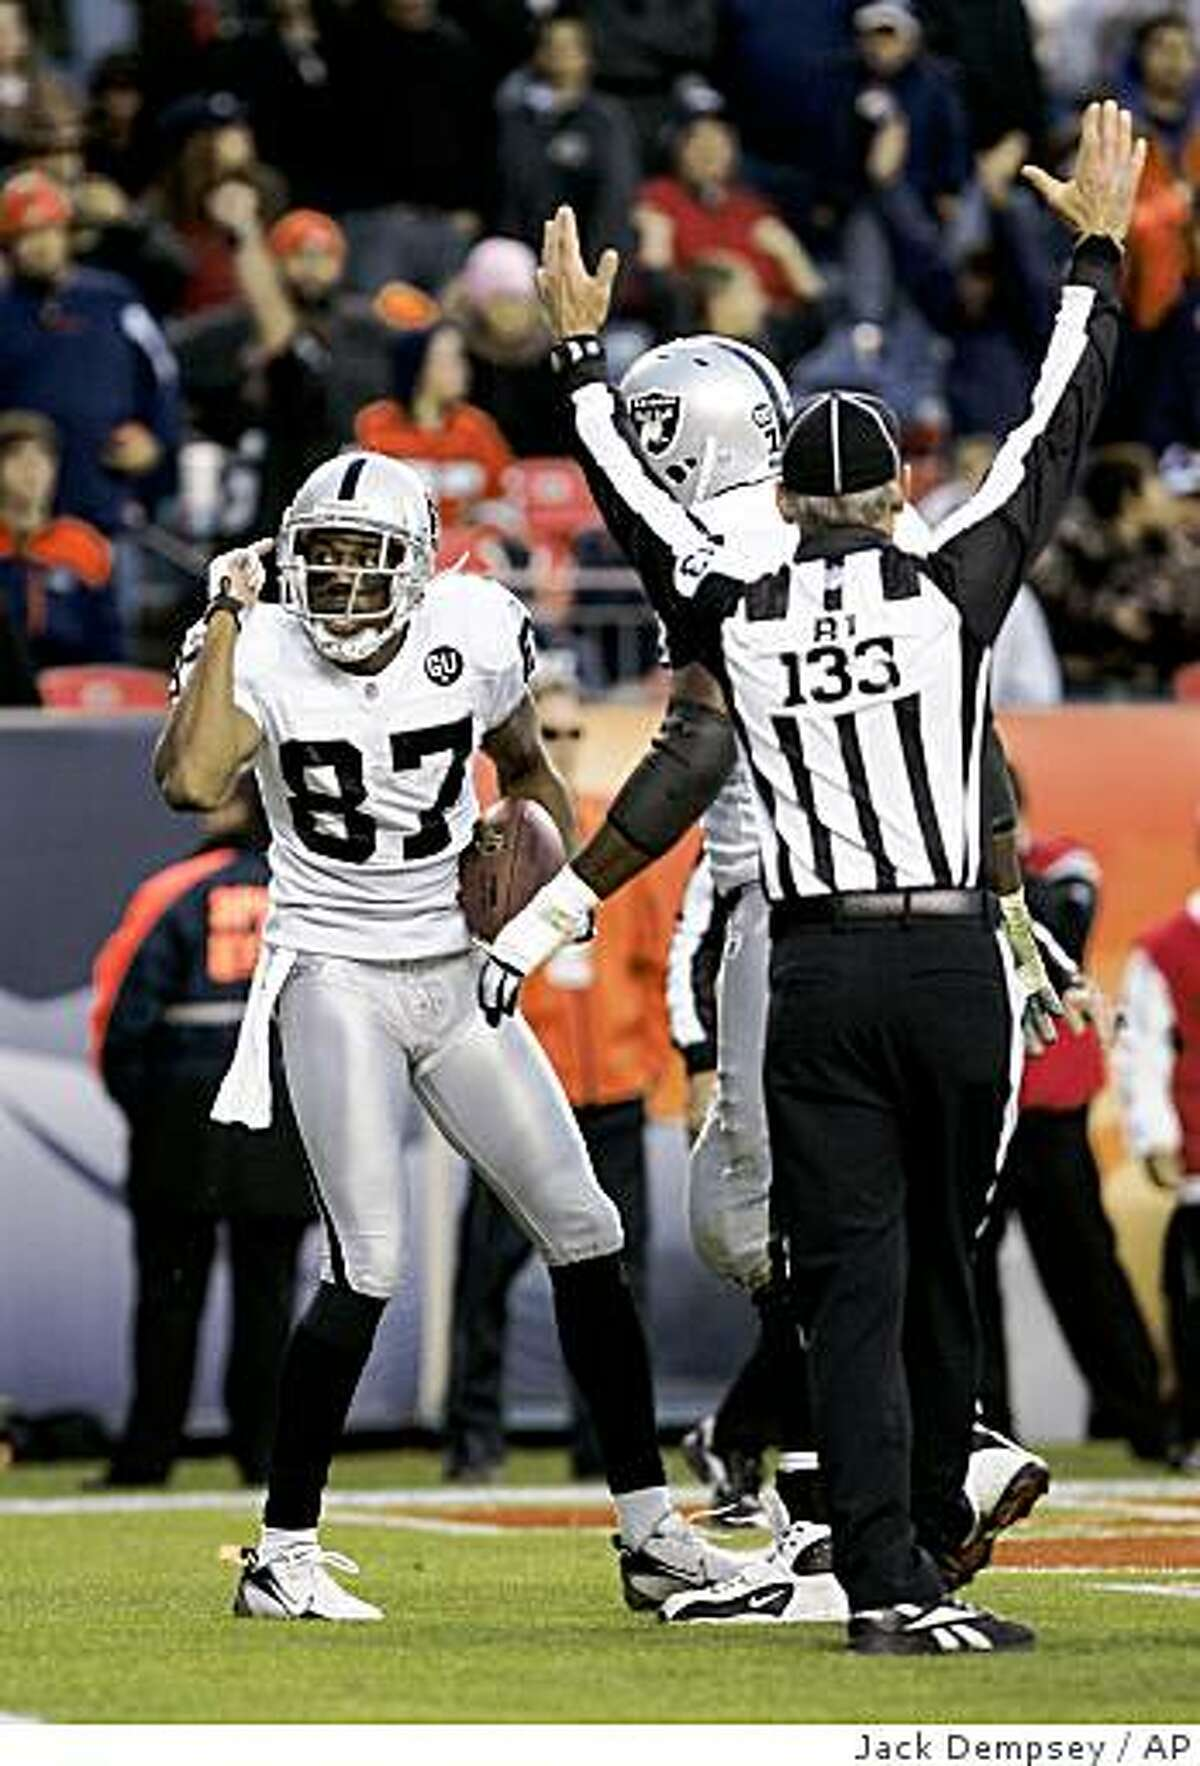 Oakland Raiders wide receiver Ashley Lelie (87) celebrates after catching a touchdown pass against Denver Broncos during the fourth quarter of an NFL football game in Denver, Sunday, Nov. 23, 2008. The Raiders beat the Broncos 31-10. (AP Photo/Jack Dempsey)